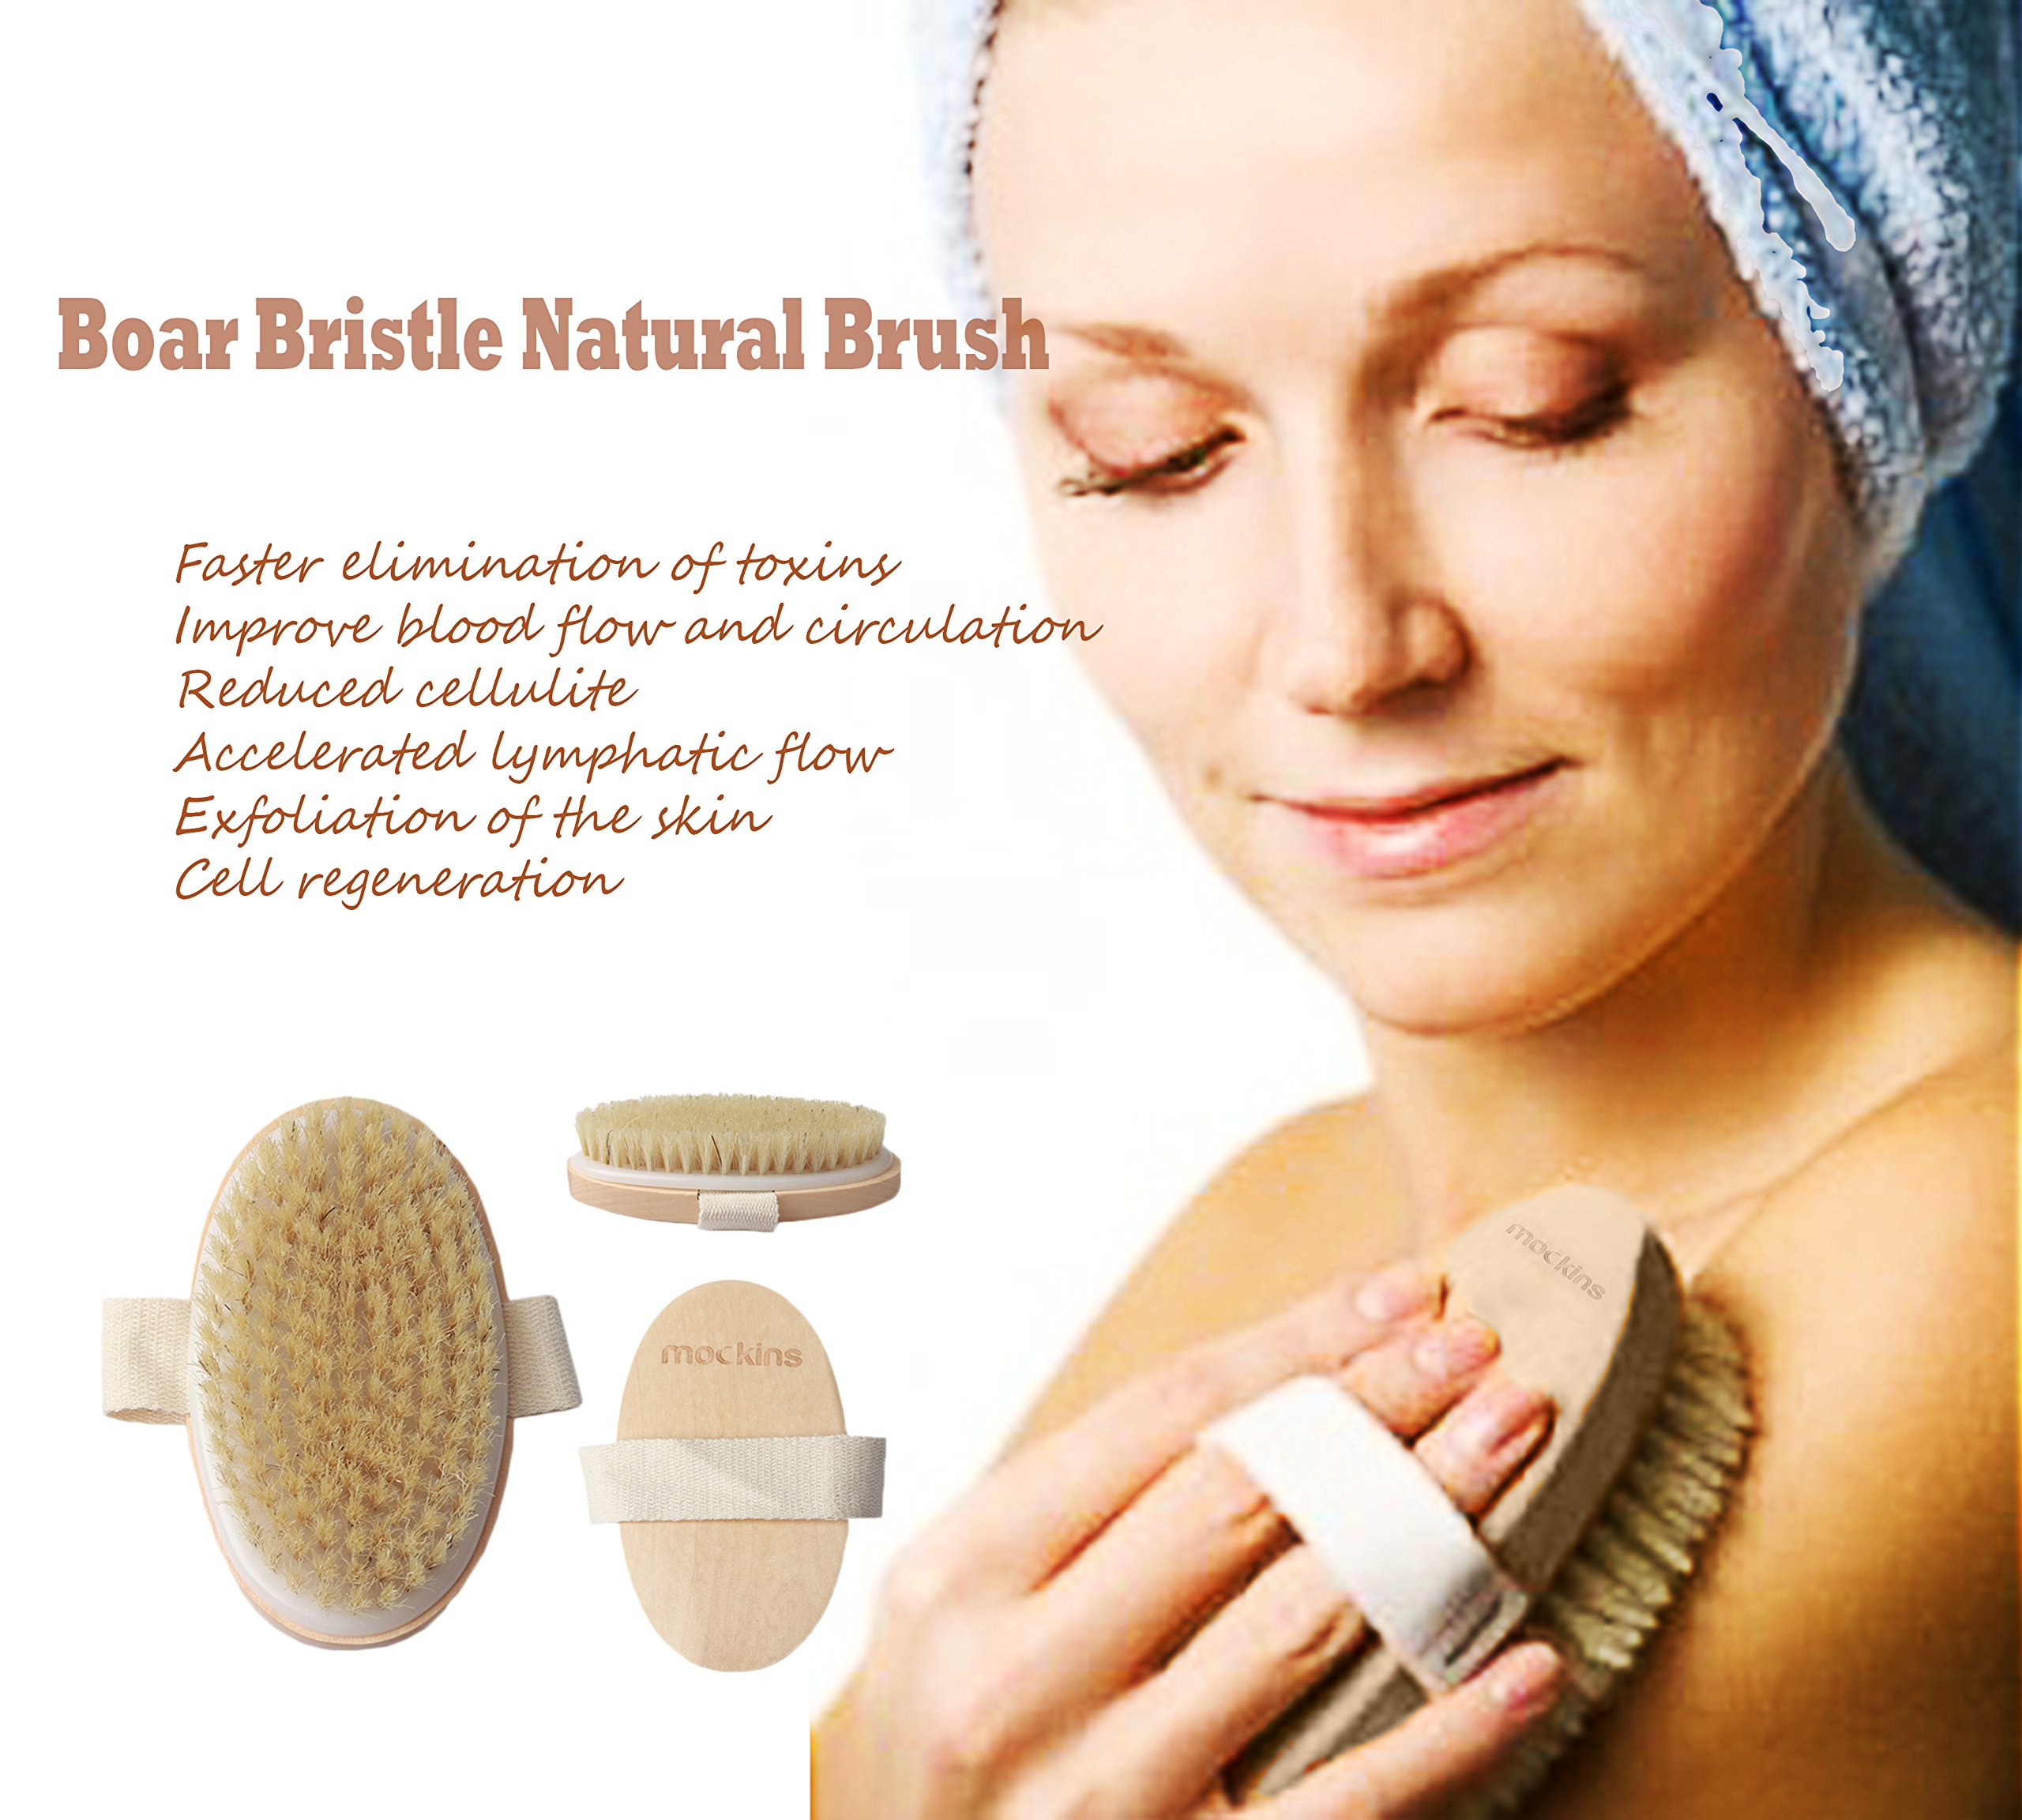 mockins Natural Boar Bristle Body Brush Set With Detachable Cellulite Brush And Long Wooden Handle For Dry Brushing Perfect Kit To Exfoliate And Alleviate Cellulite - Best Mother's Day Gift Set … … by Mockins (Image #7)